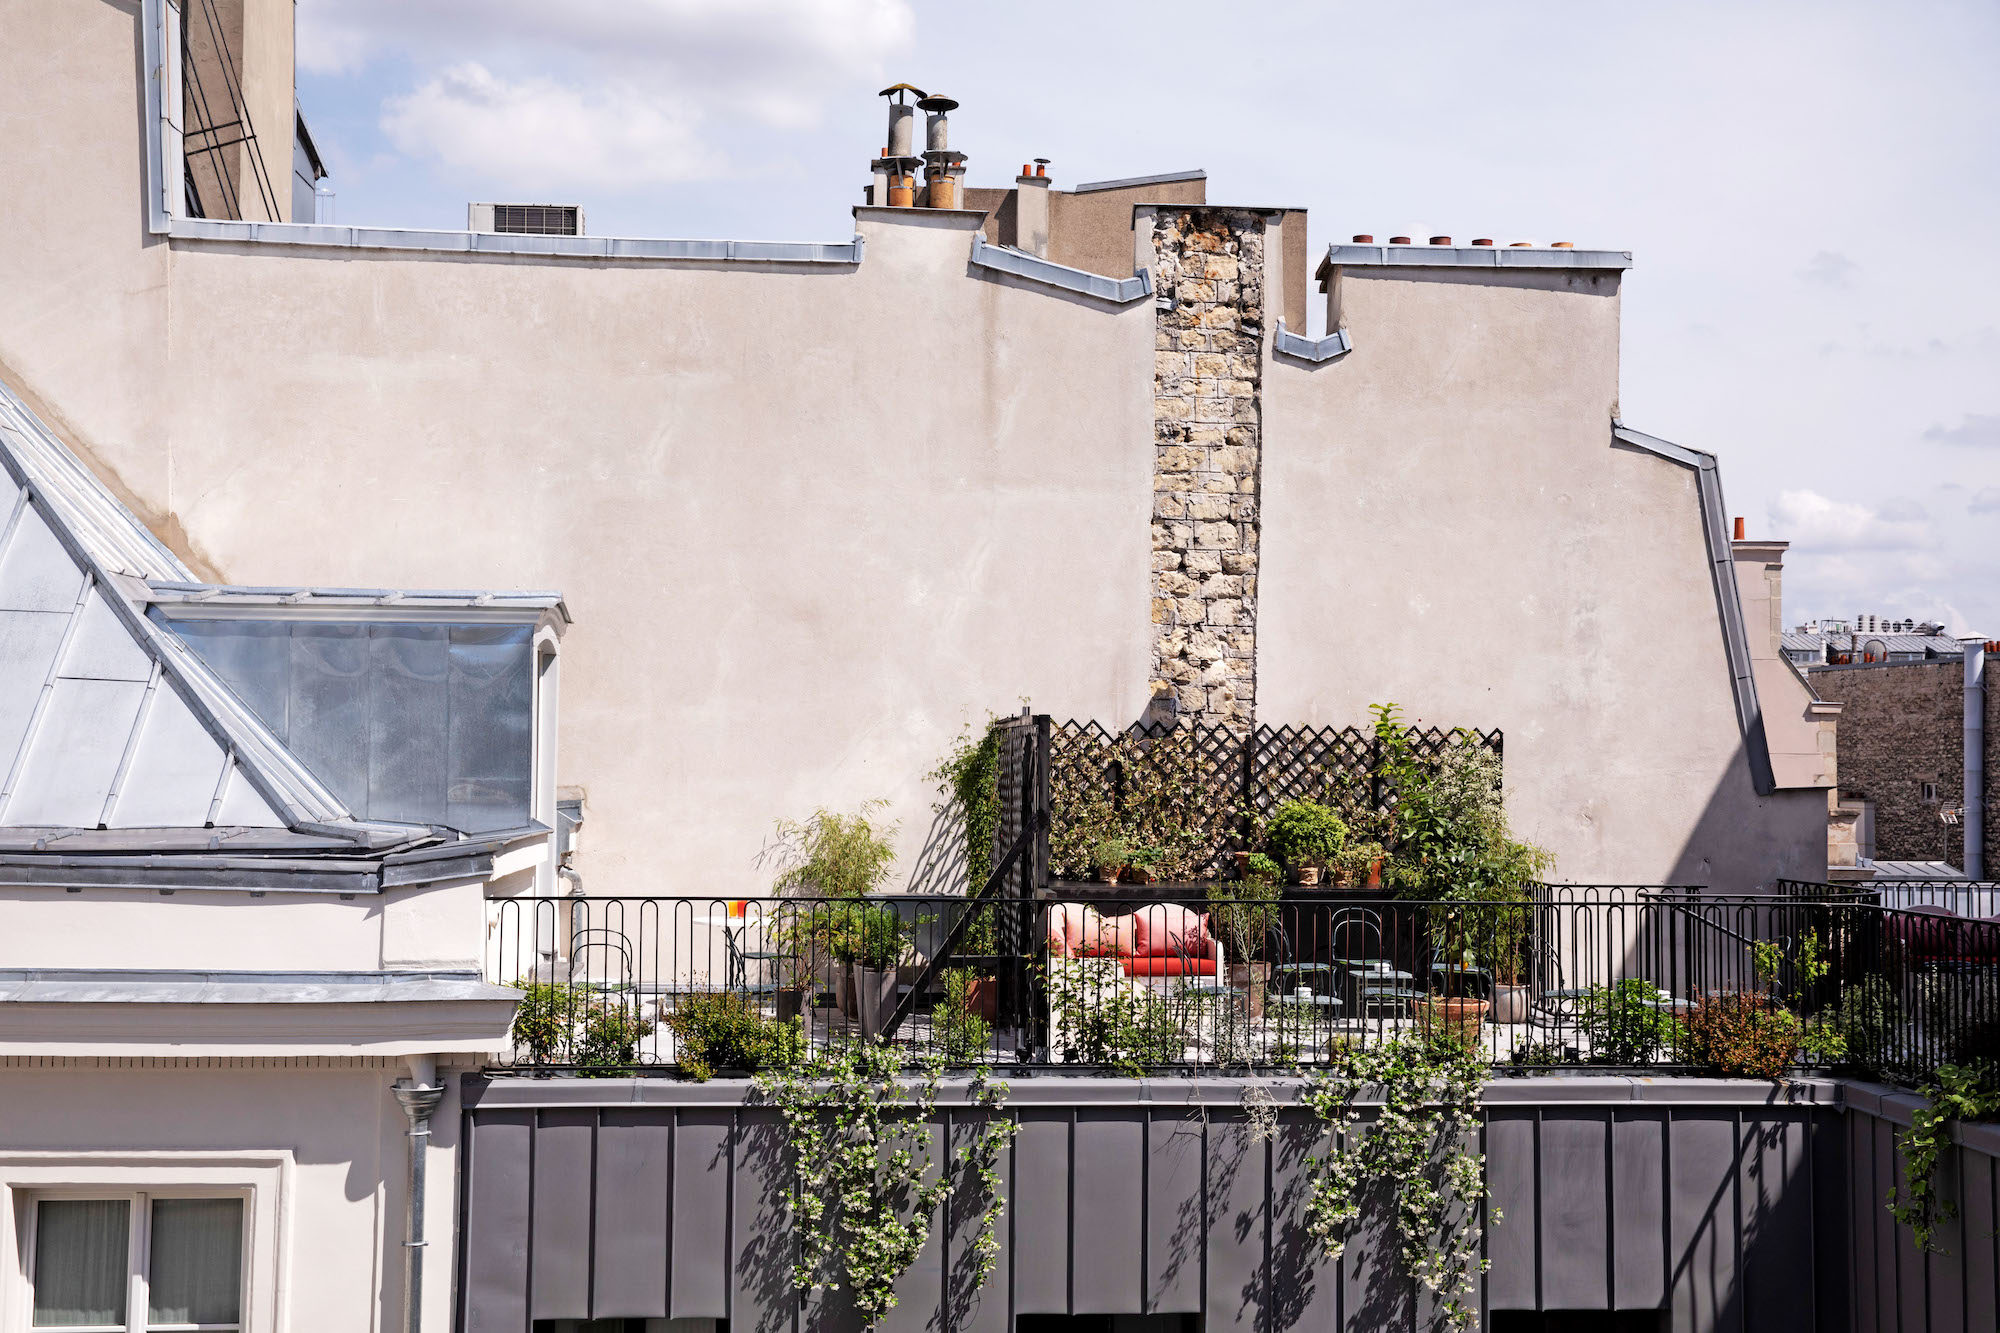 Paris rooftop bar The Shed, is laid-back and has a pretty terrace adorned with plants.